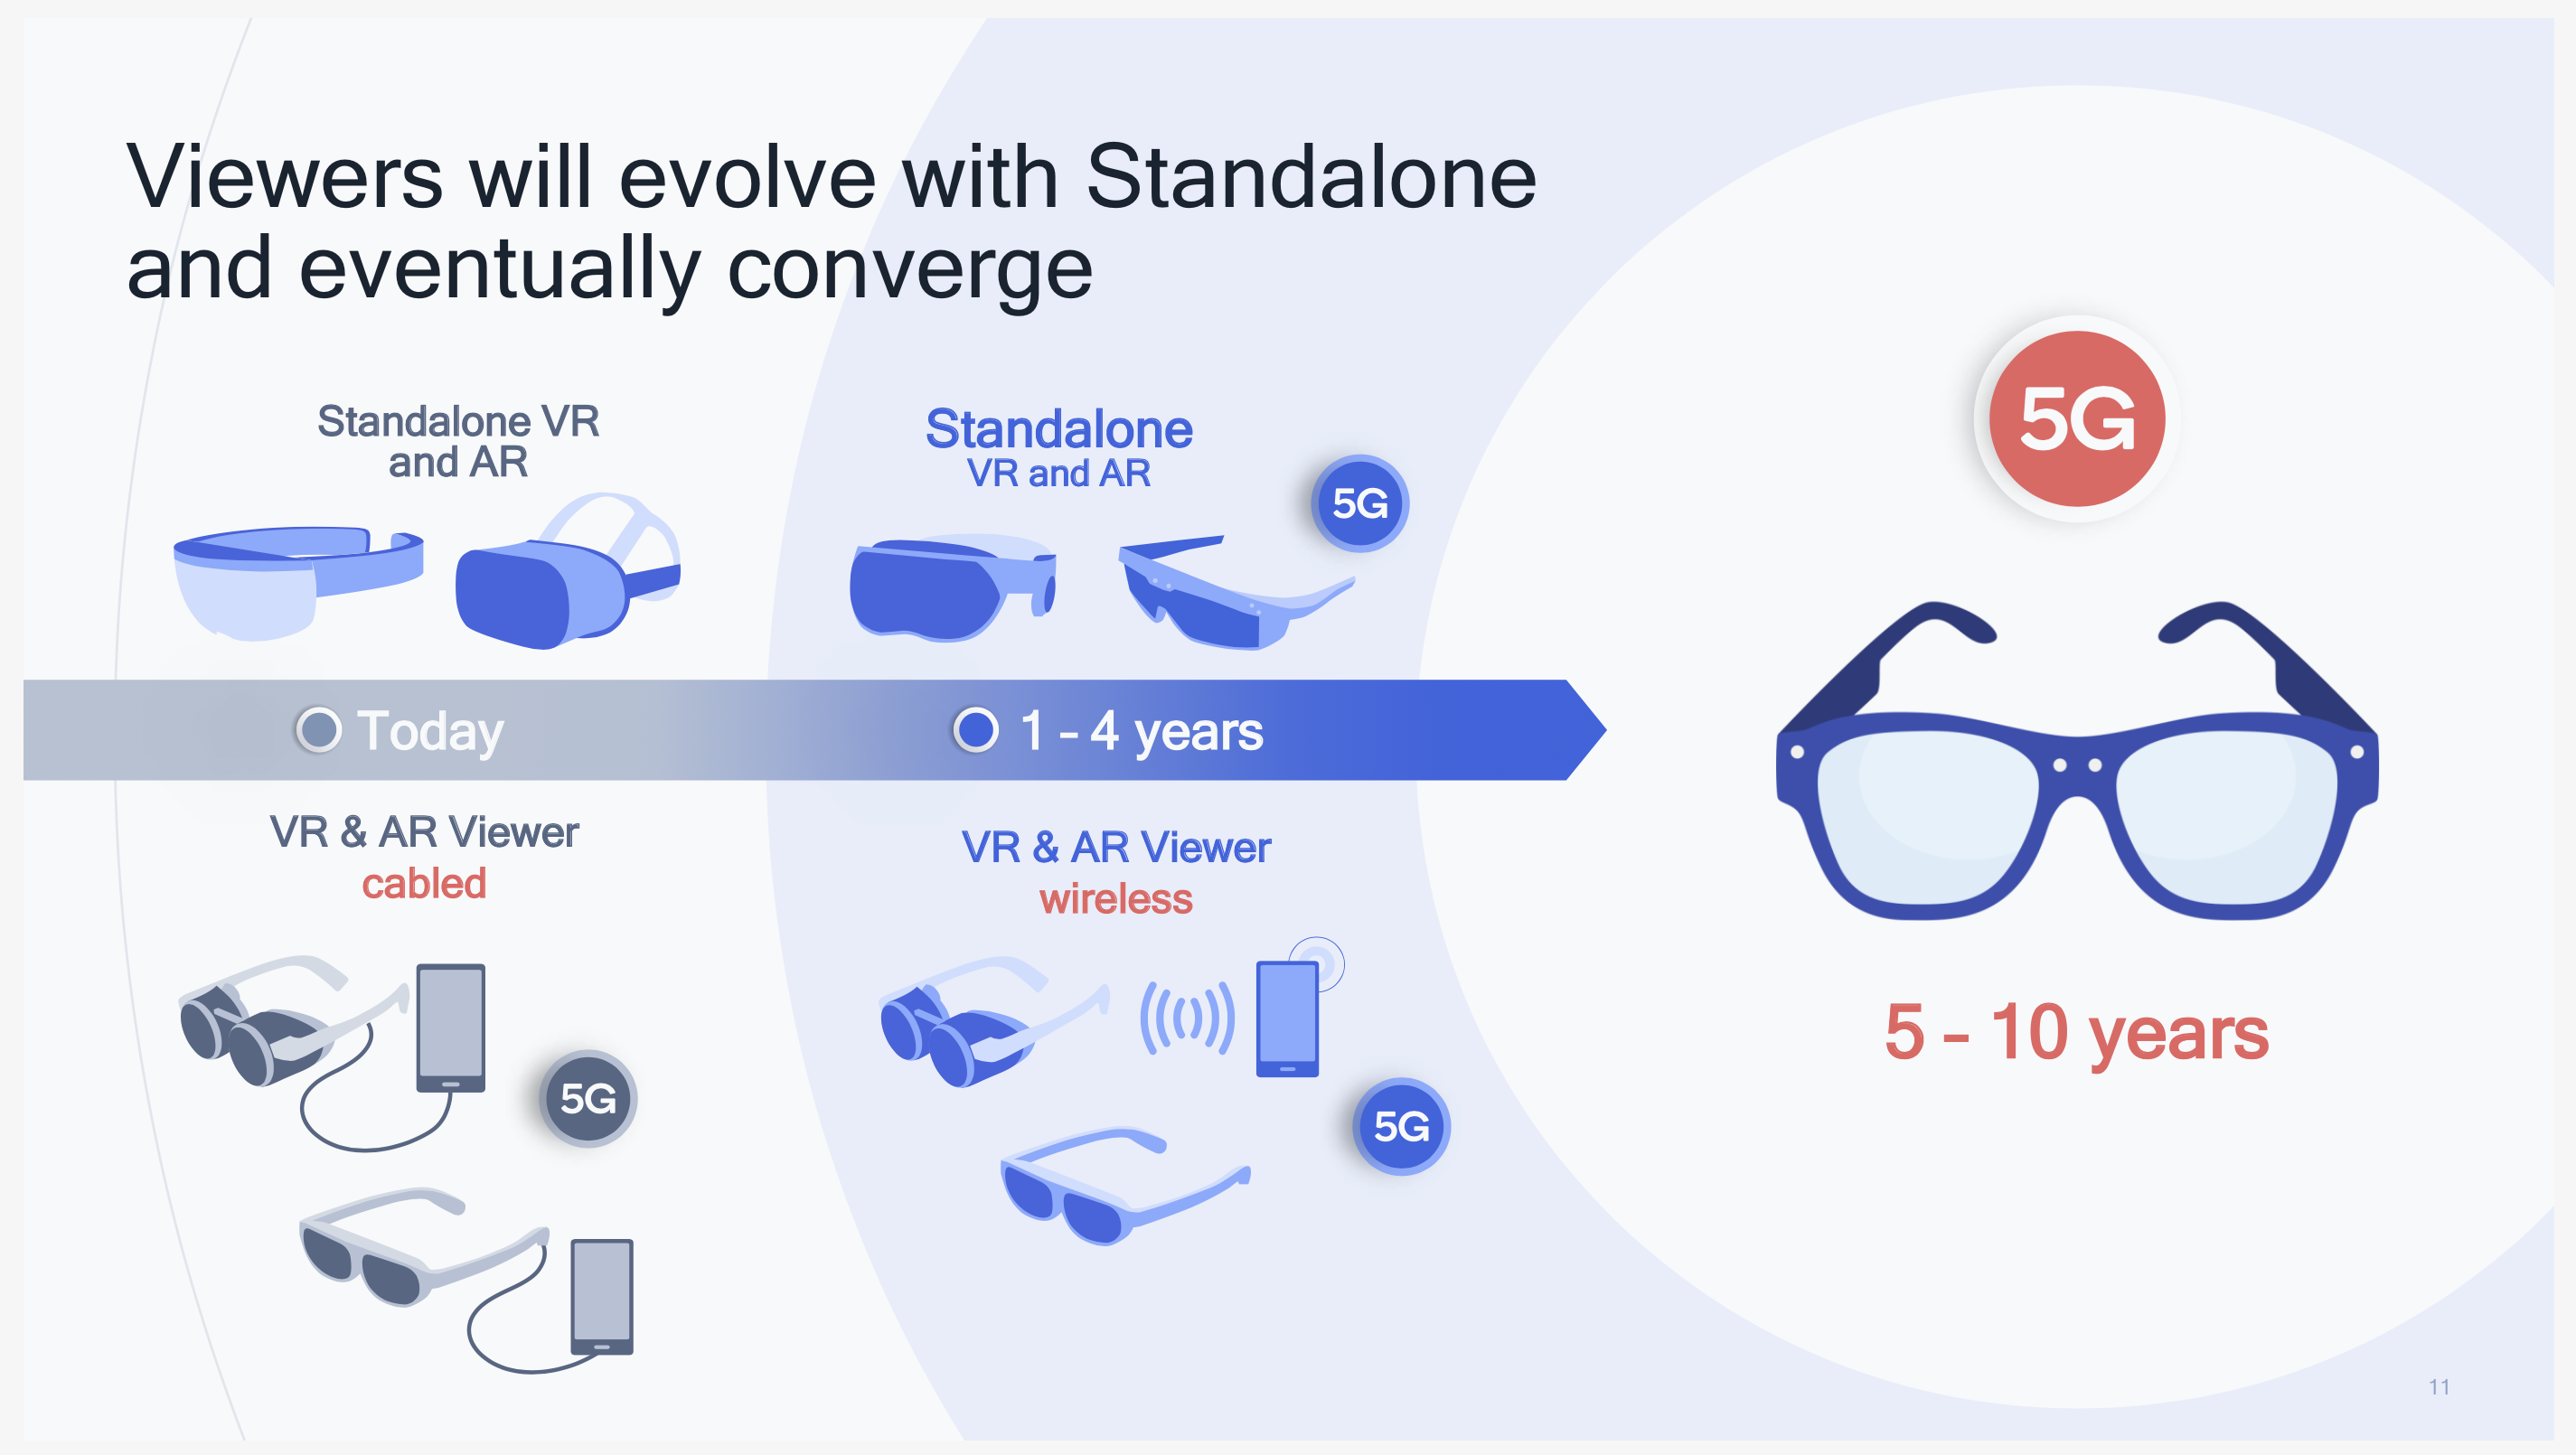 Qualcomm Snapdragon XR Platform Adoption